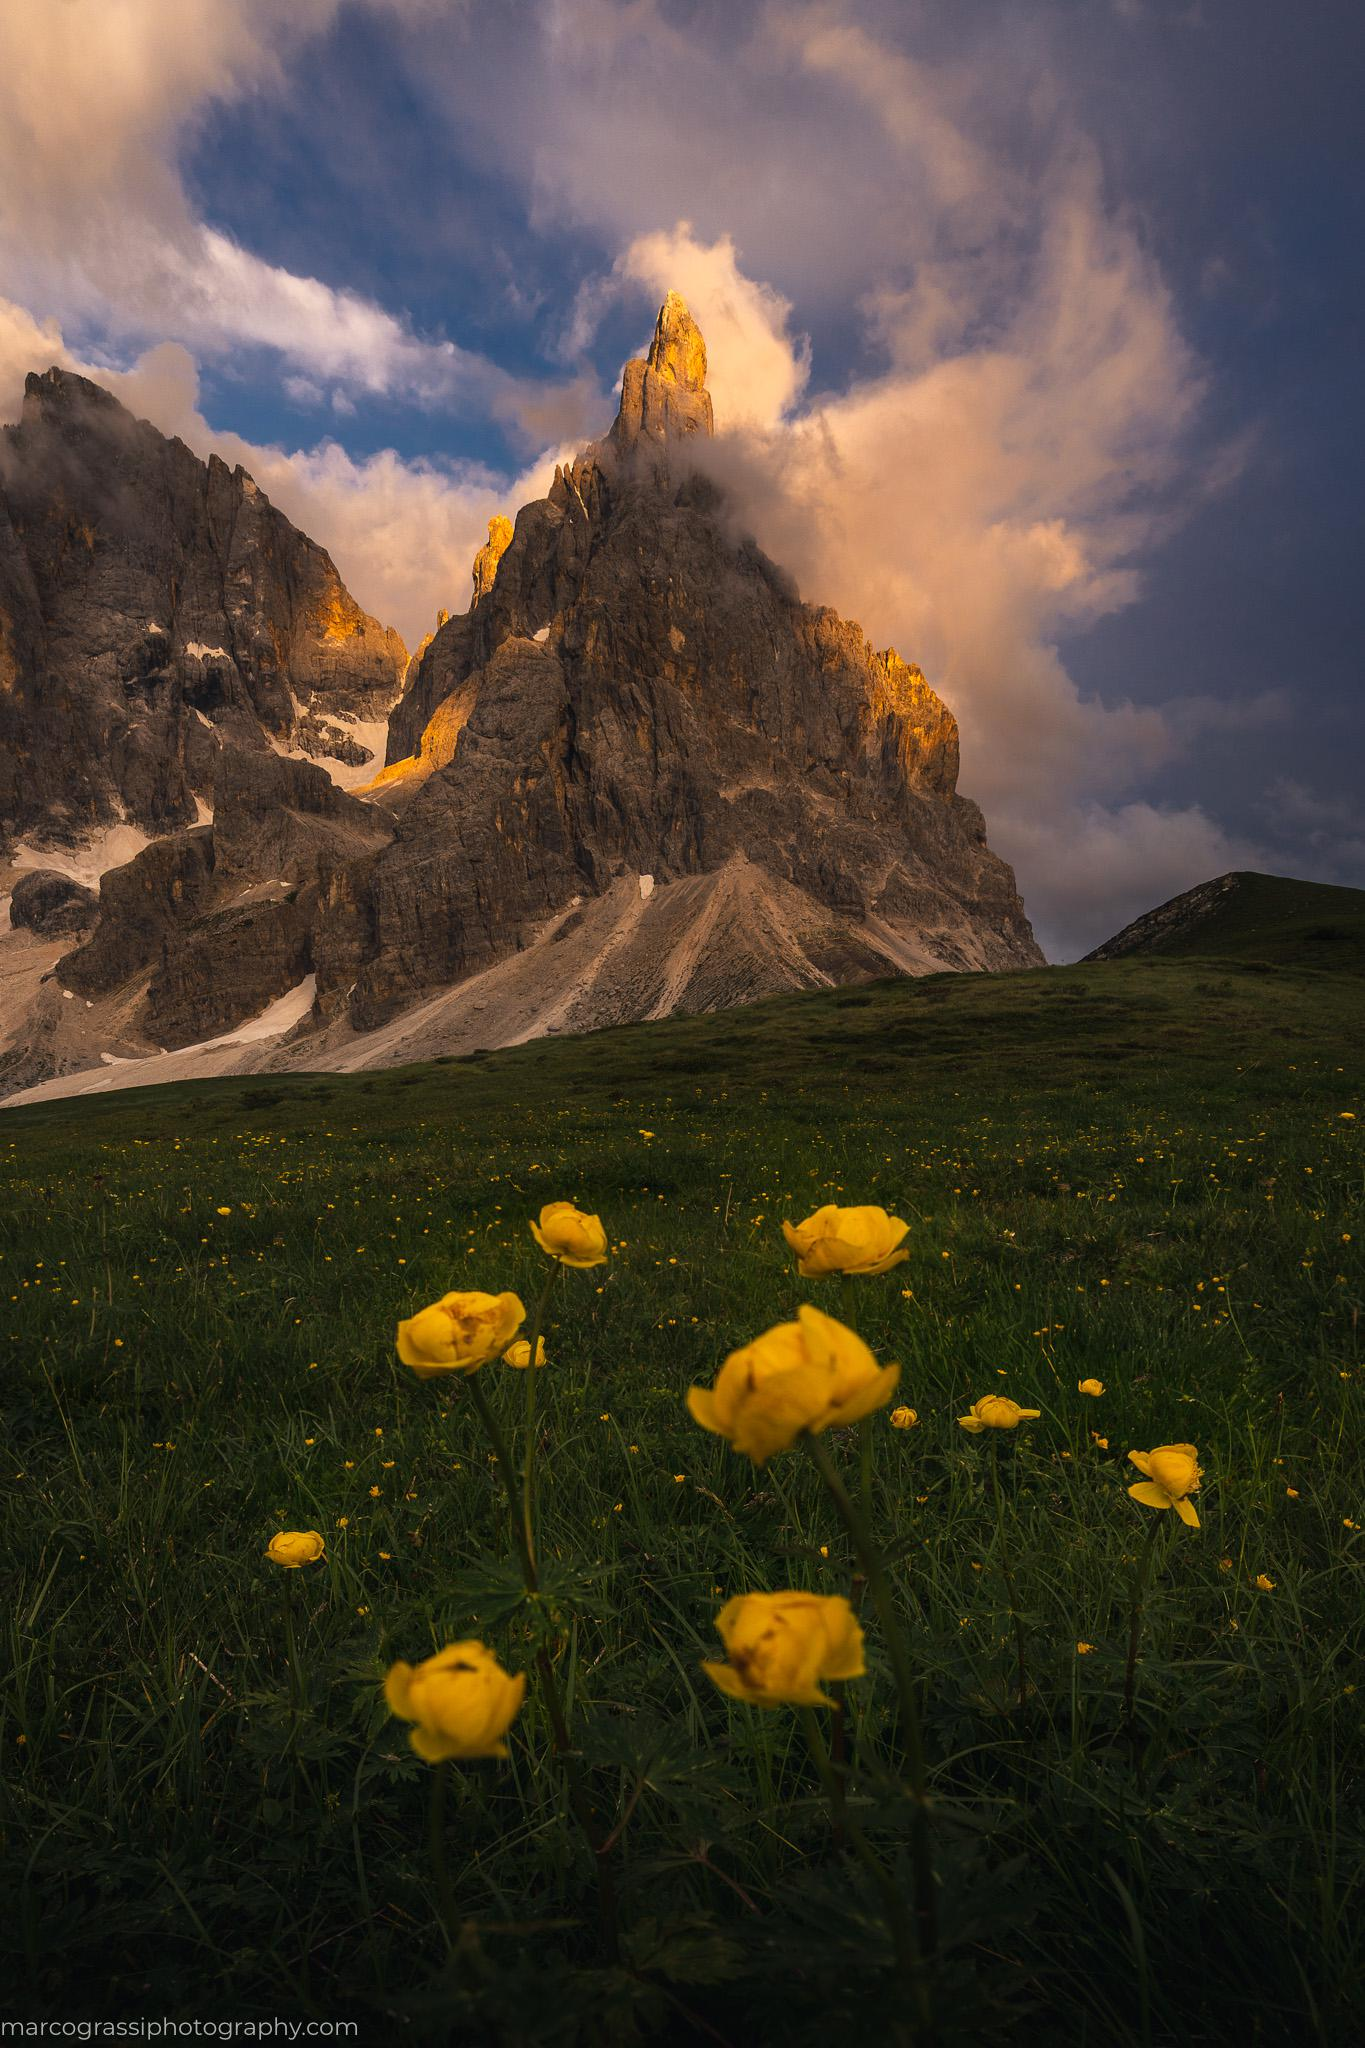 Summer evenings in the Dolomites, Italy